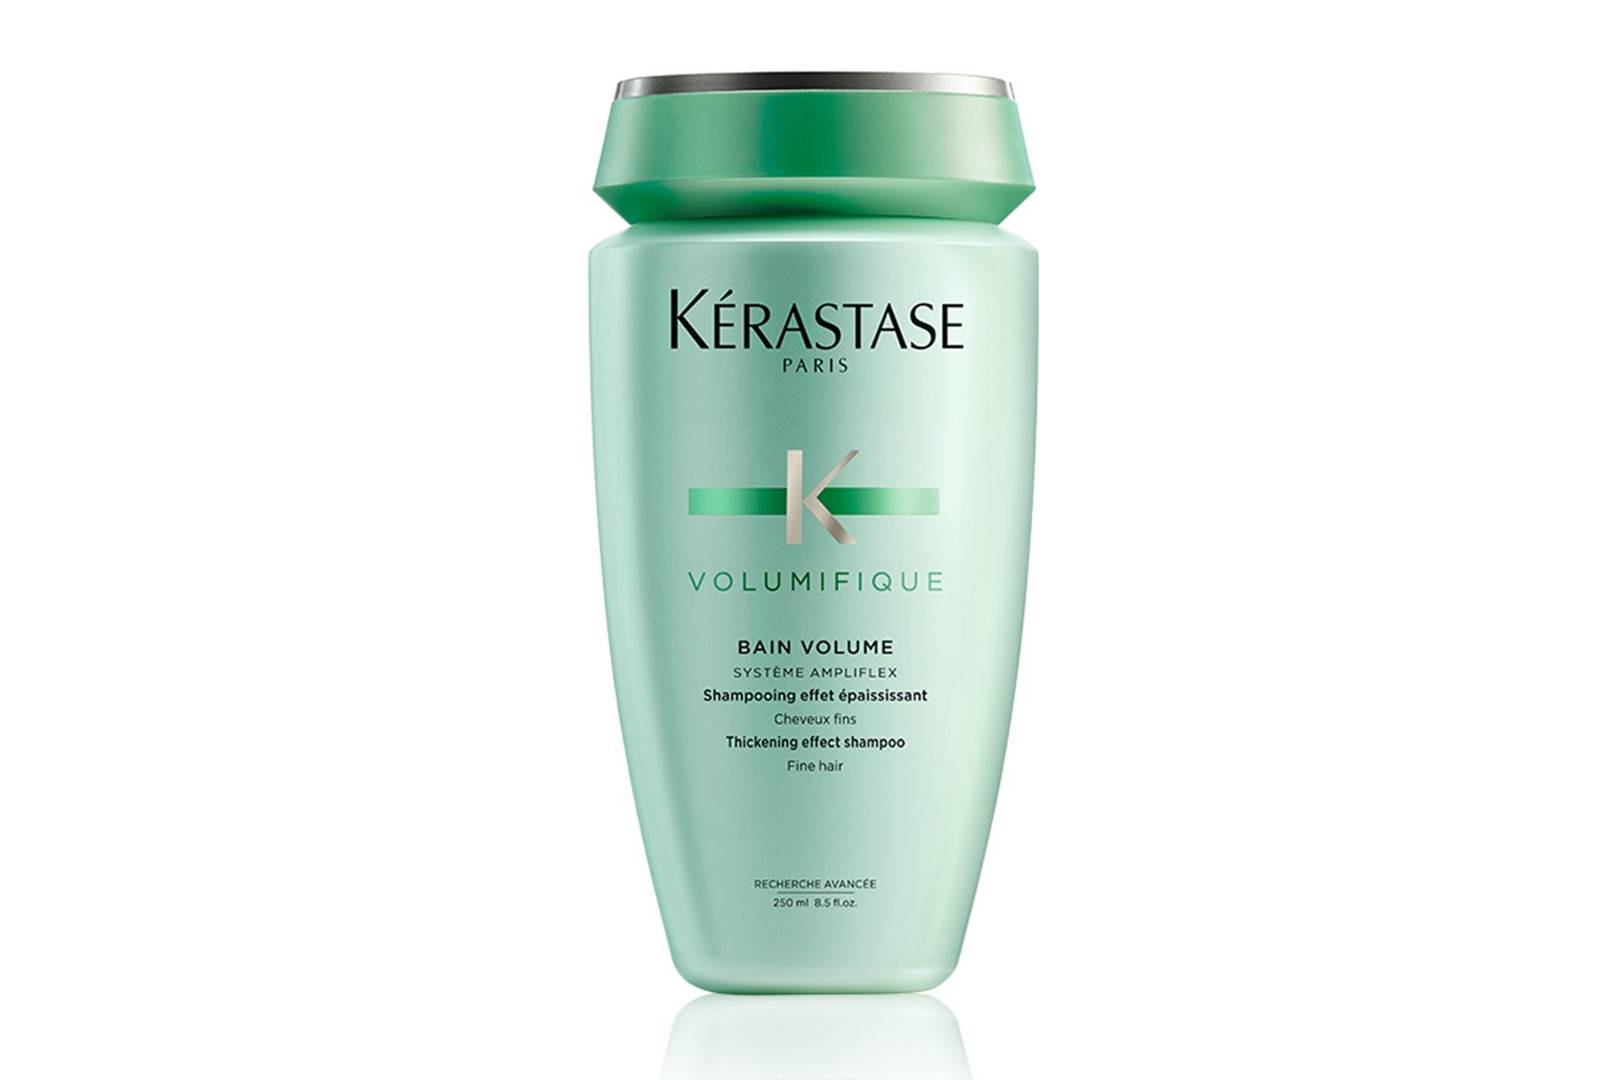 The Best Shampoos For Thin & Fine Hair | Glamour UK